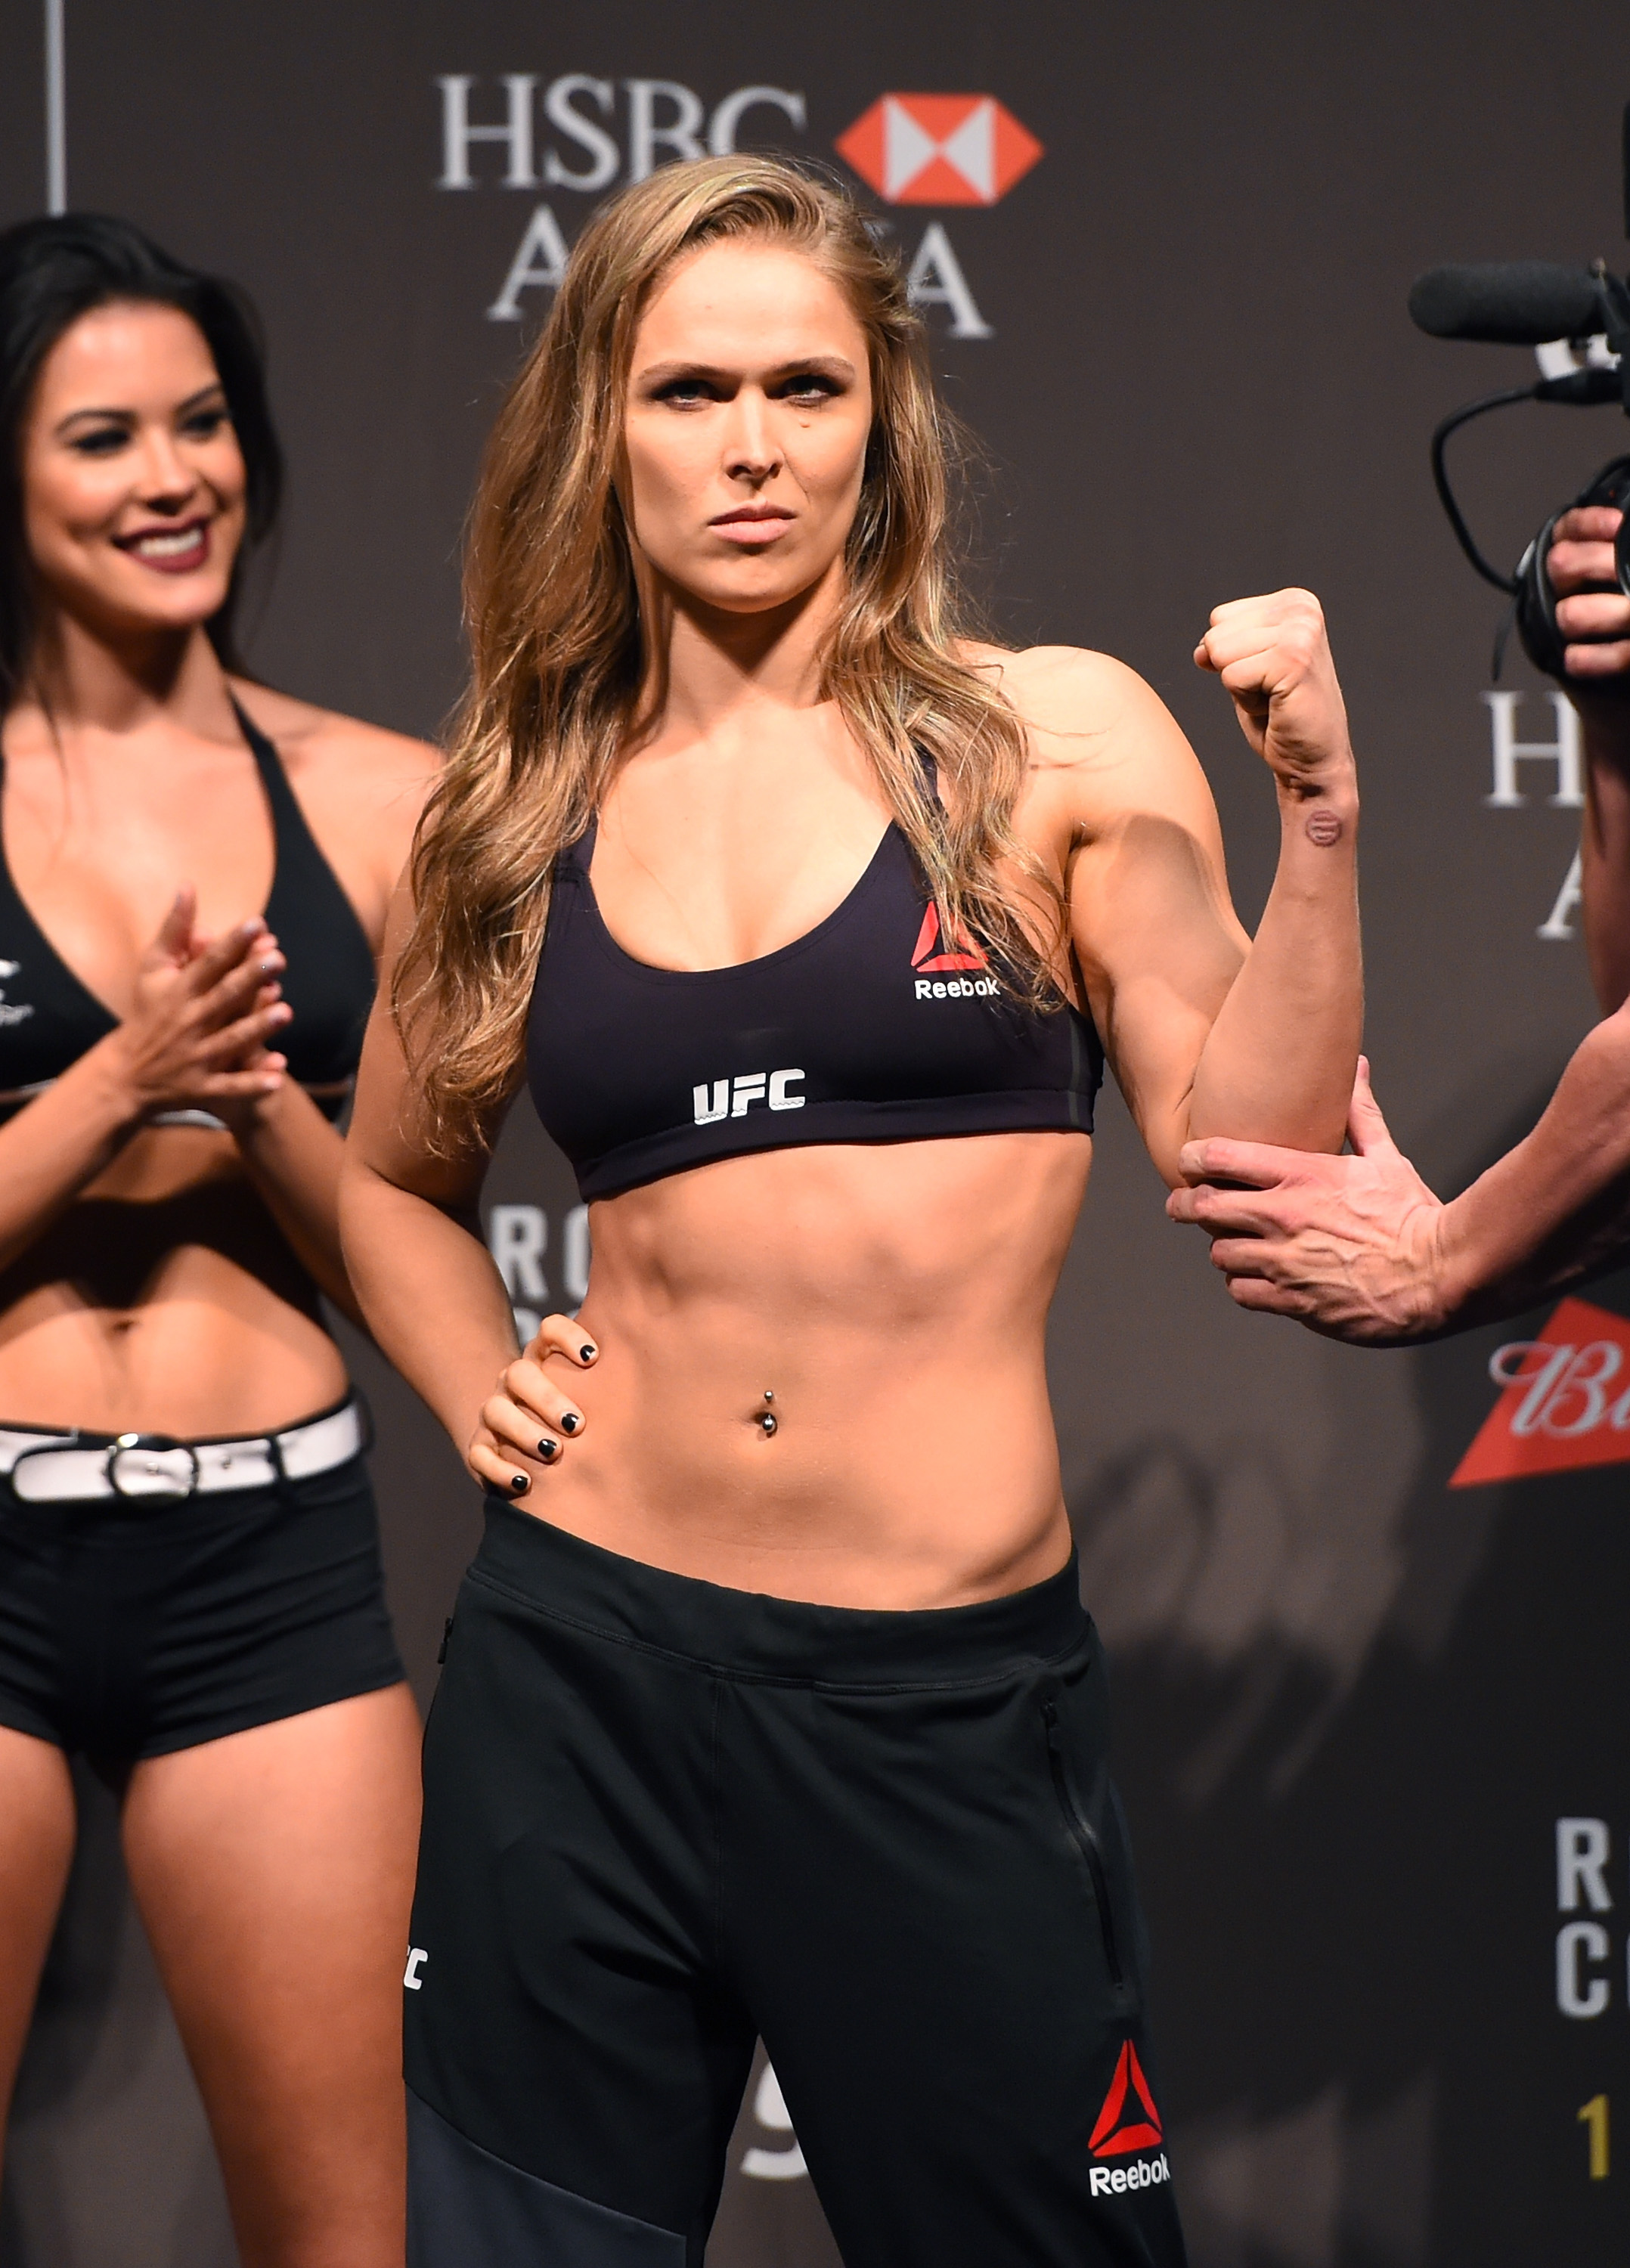 Ronda Rousey shapes up for a fight in Brazil.